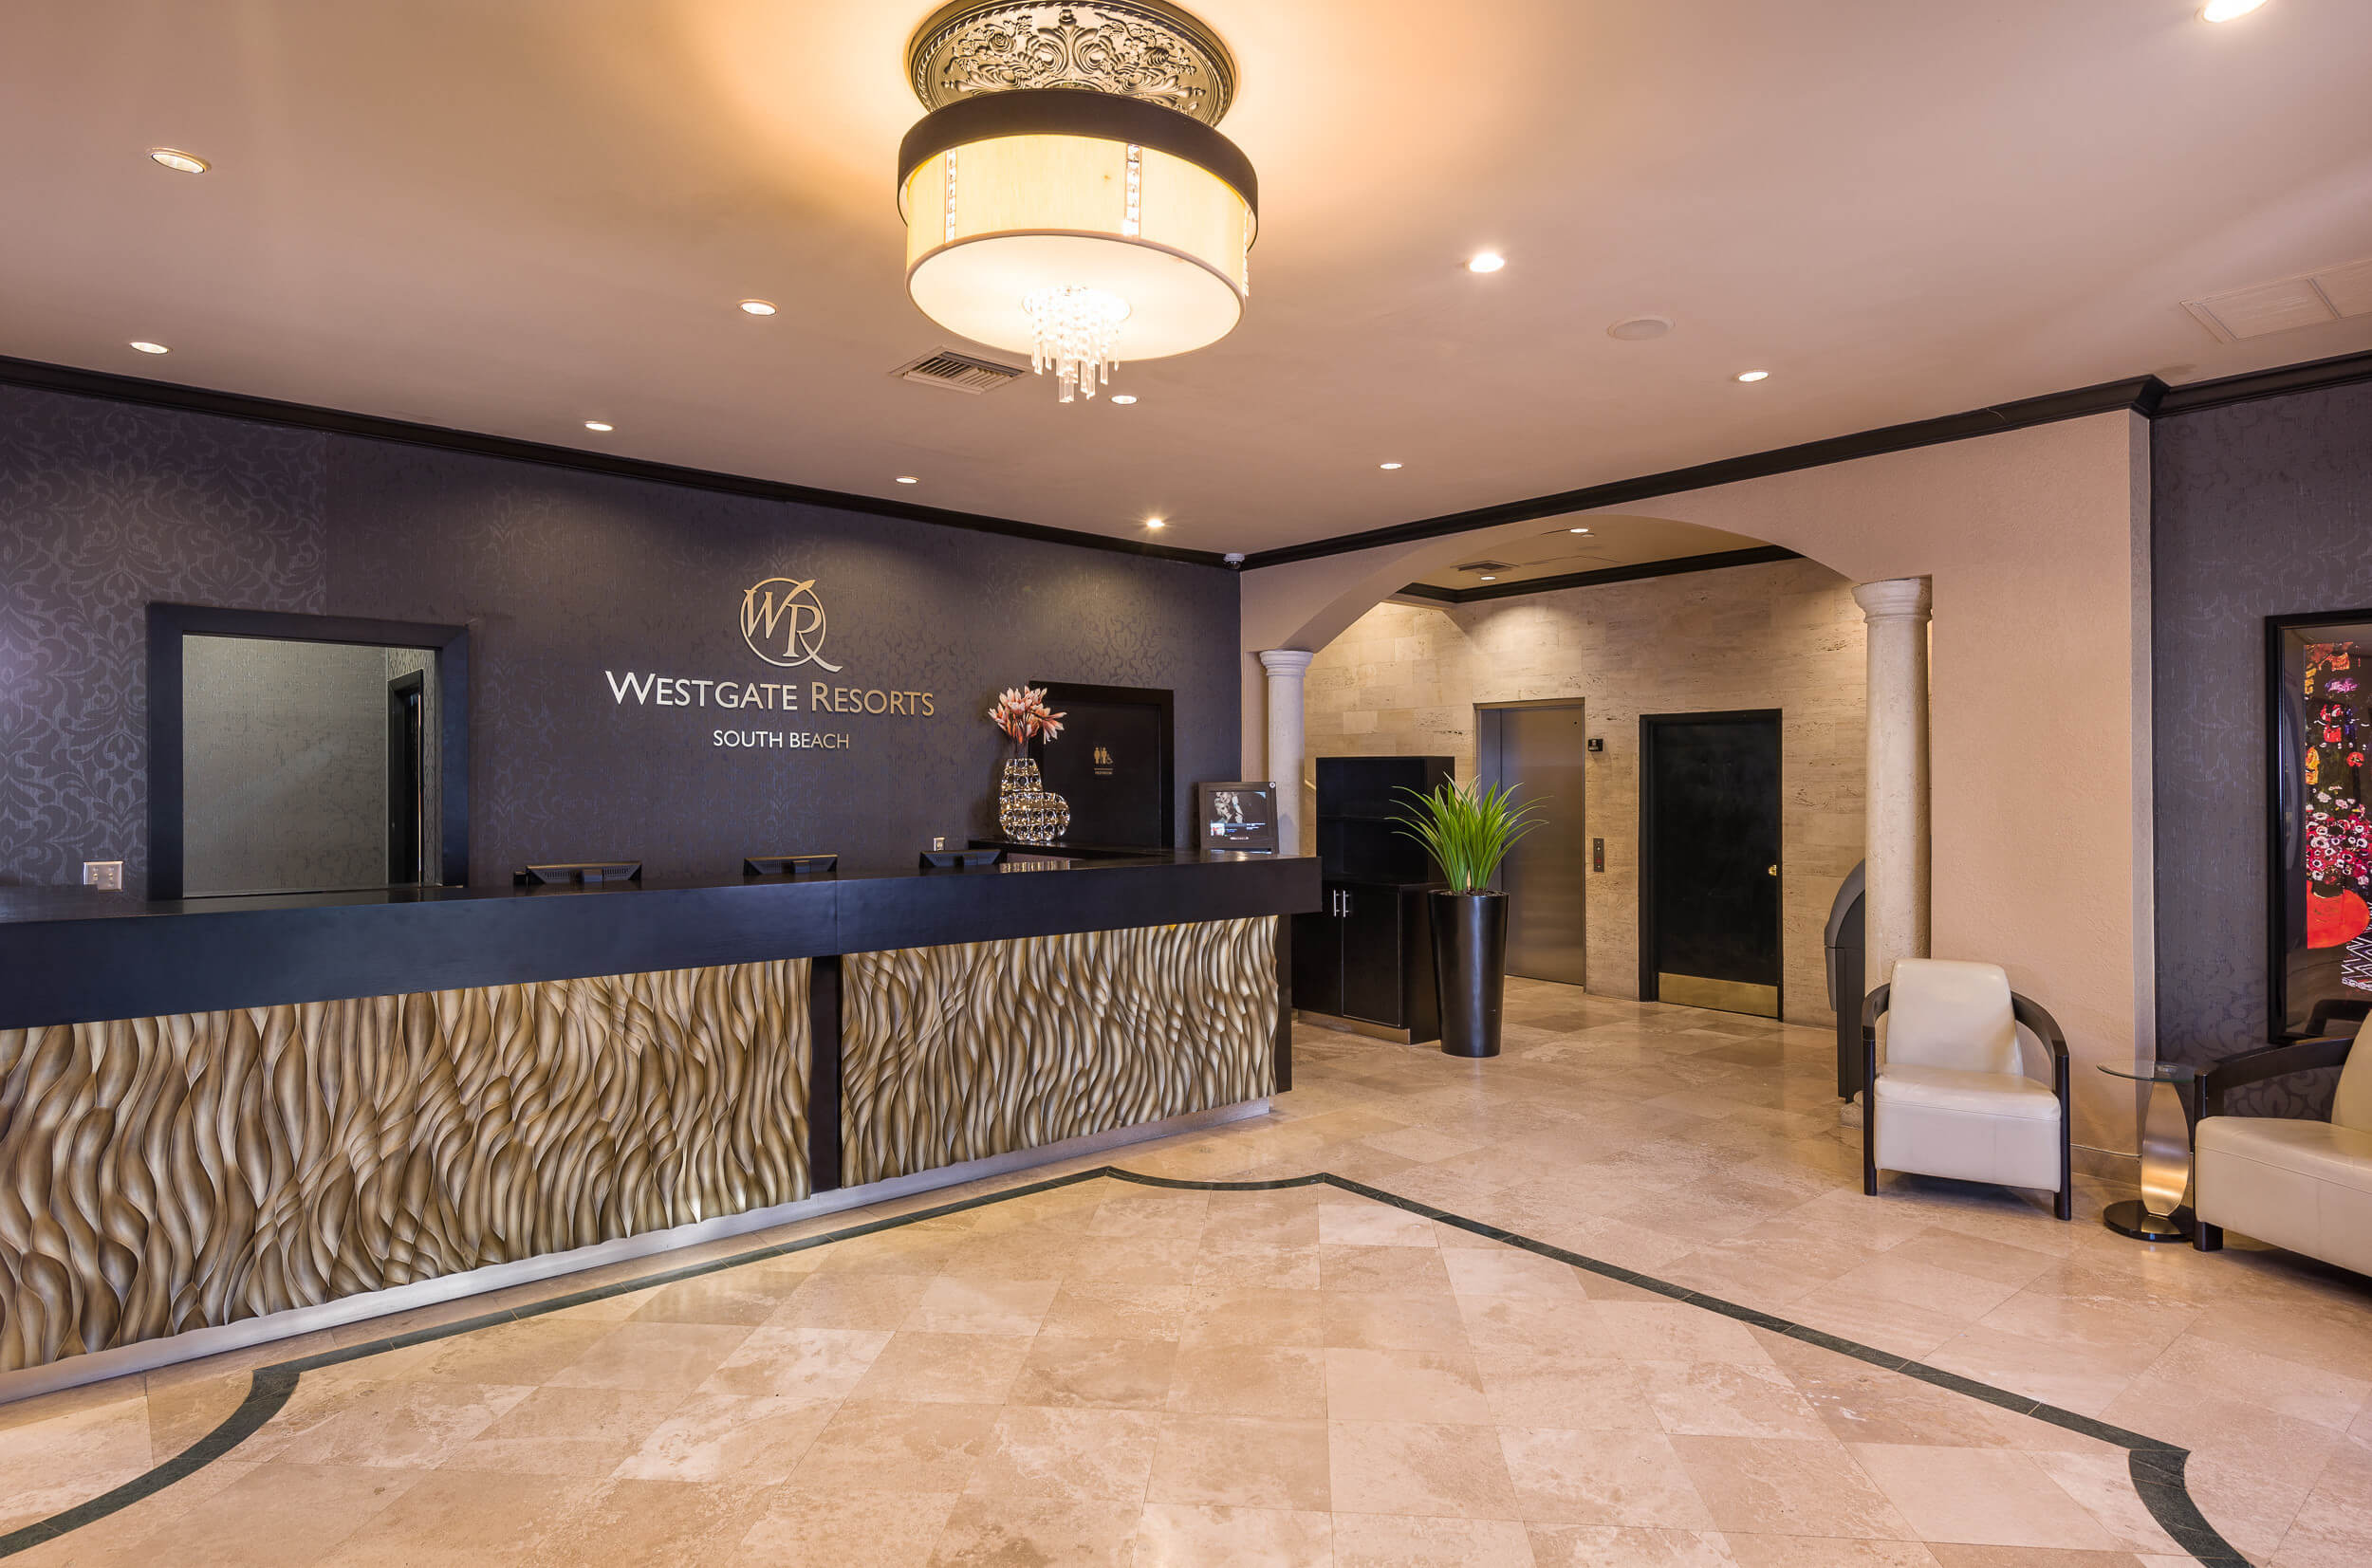 Lobby and front desk of Miami Beach resort | Westgate South Beach Oceanfront Resort